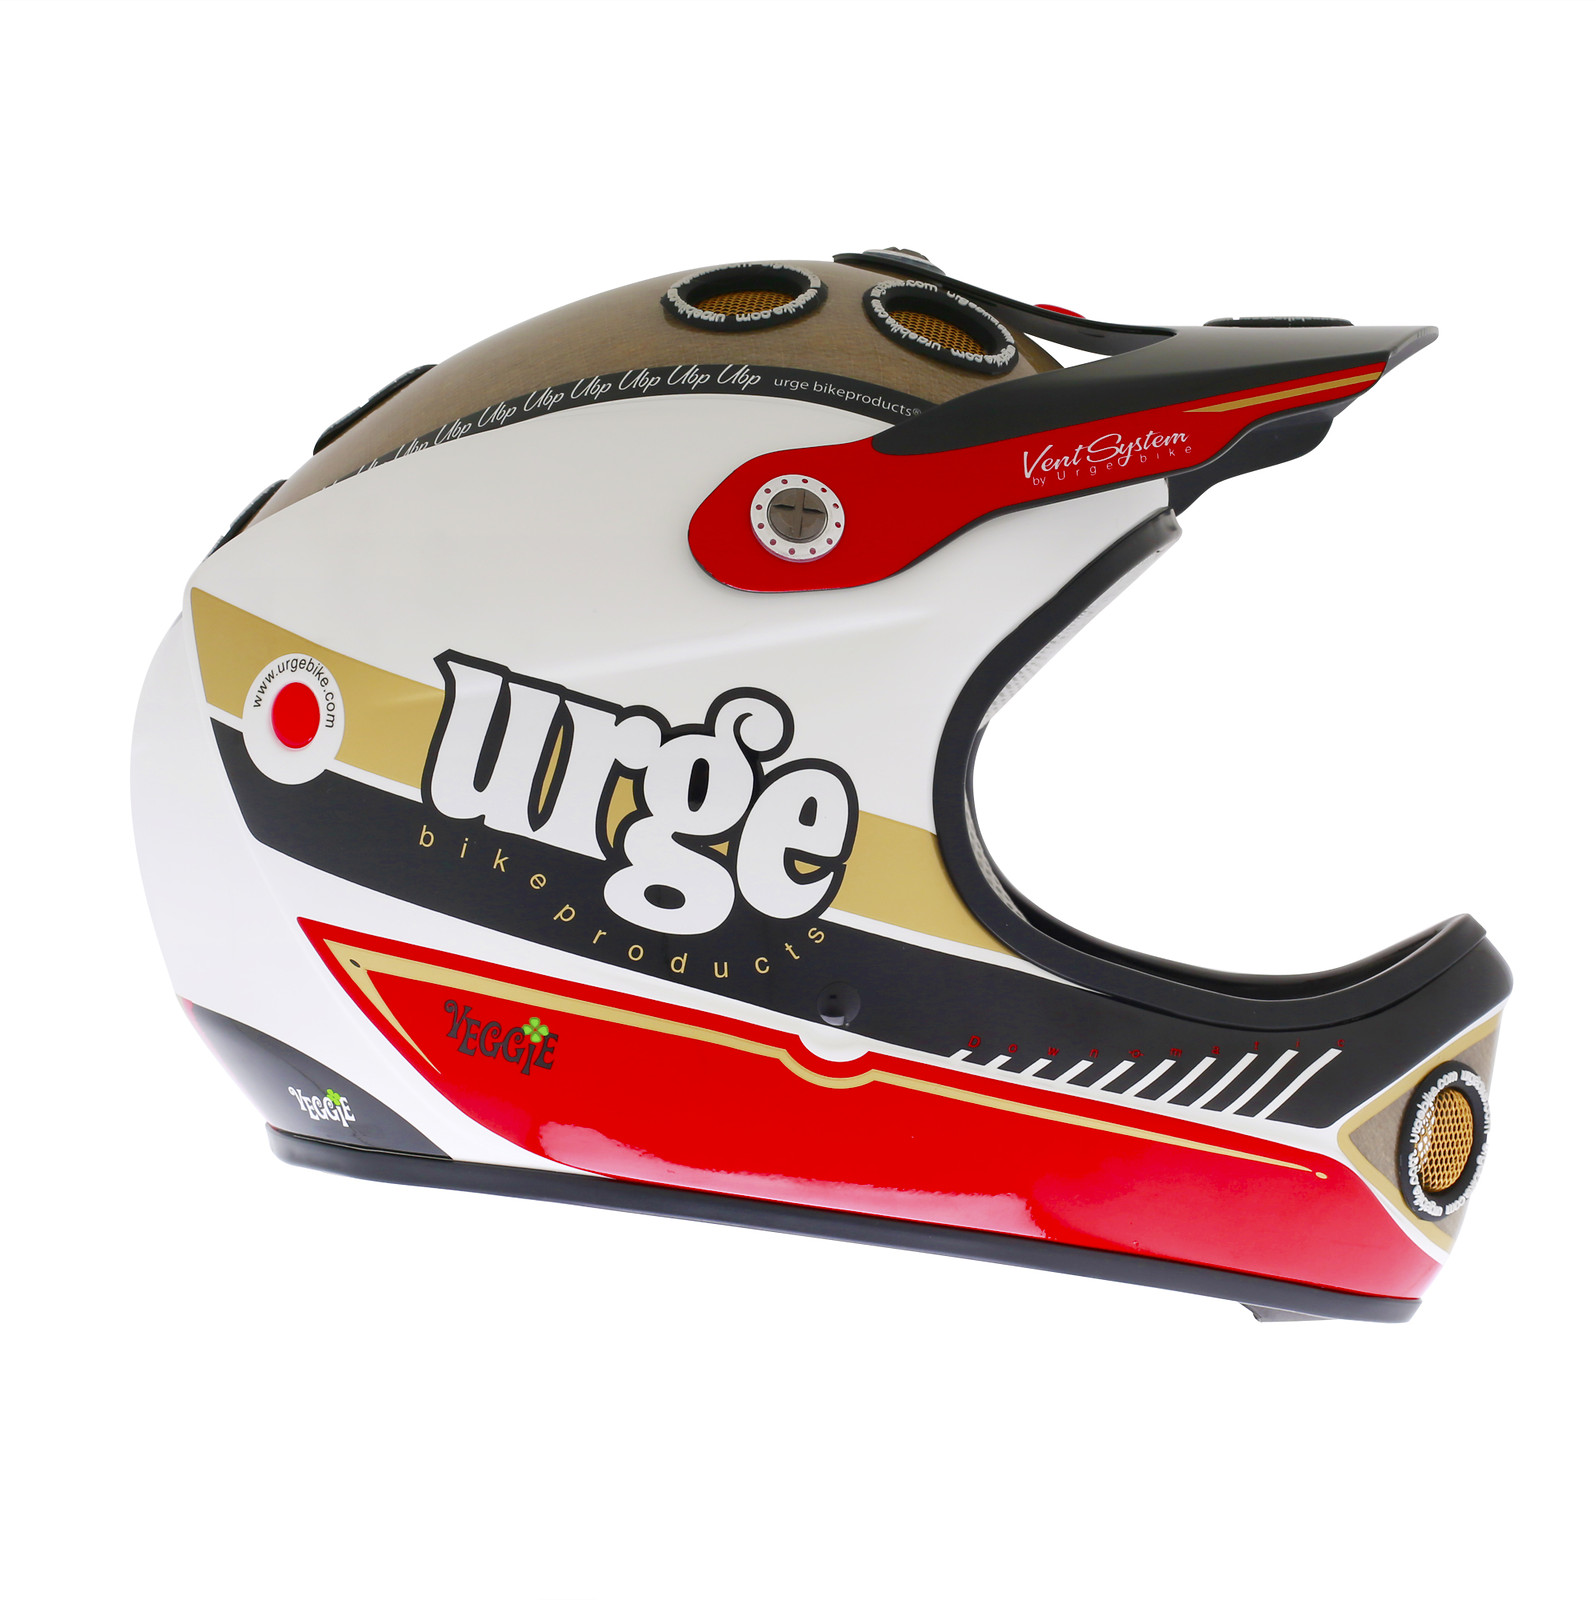 Urge 2013 Down O Matic Veggie Full Face Helmet colorama copie